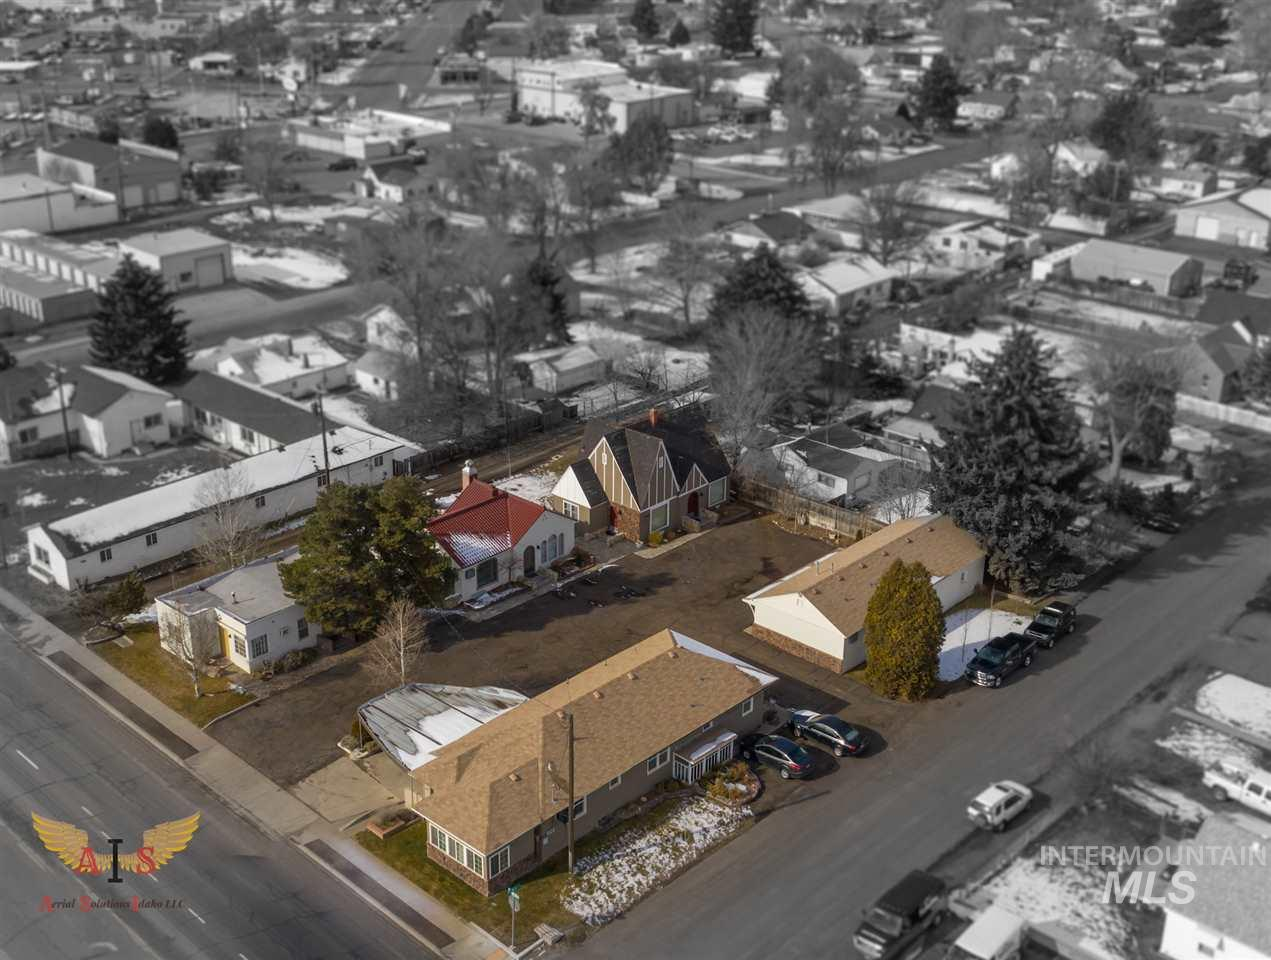 1239 Kimberly Rd, Twin Falls, Idaho 83301, Business/Commercial For Sale, Price $749,900, 98725673